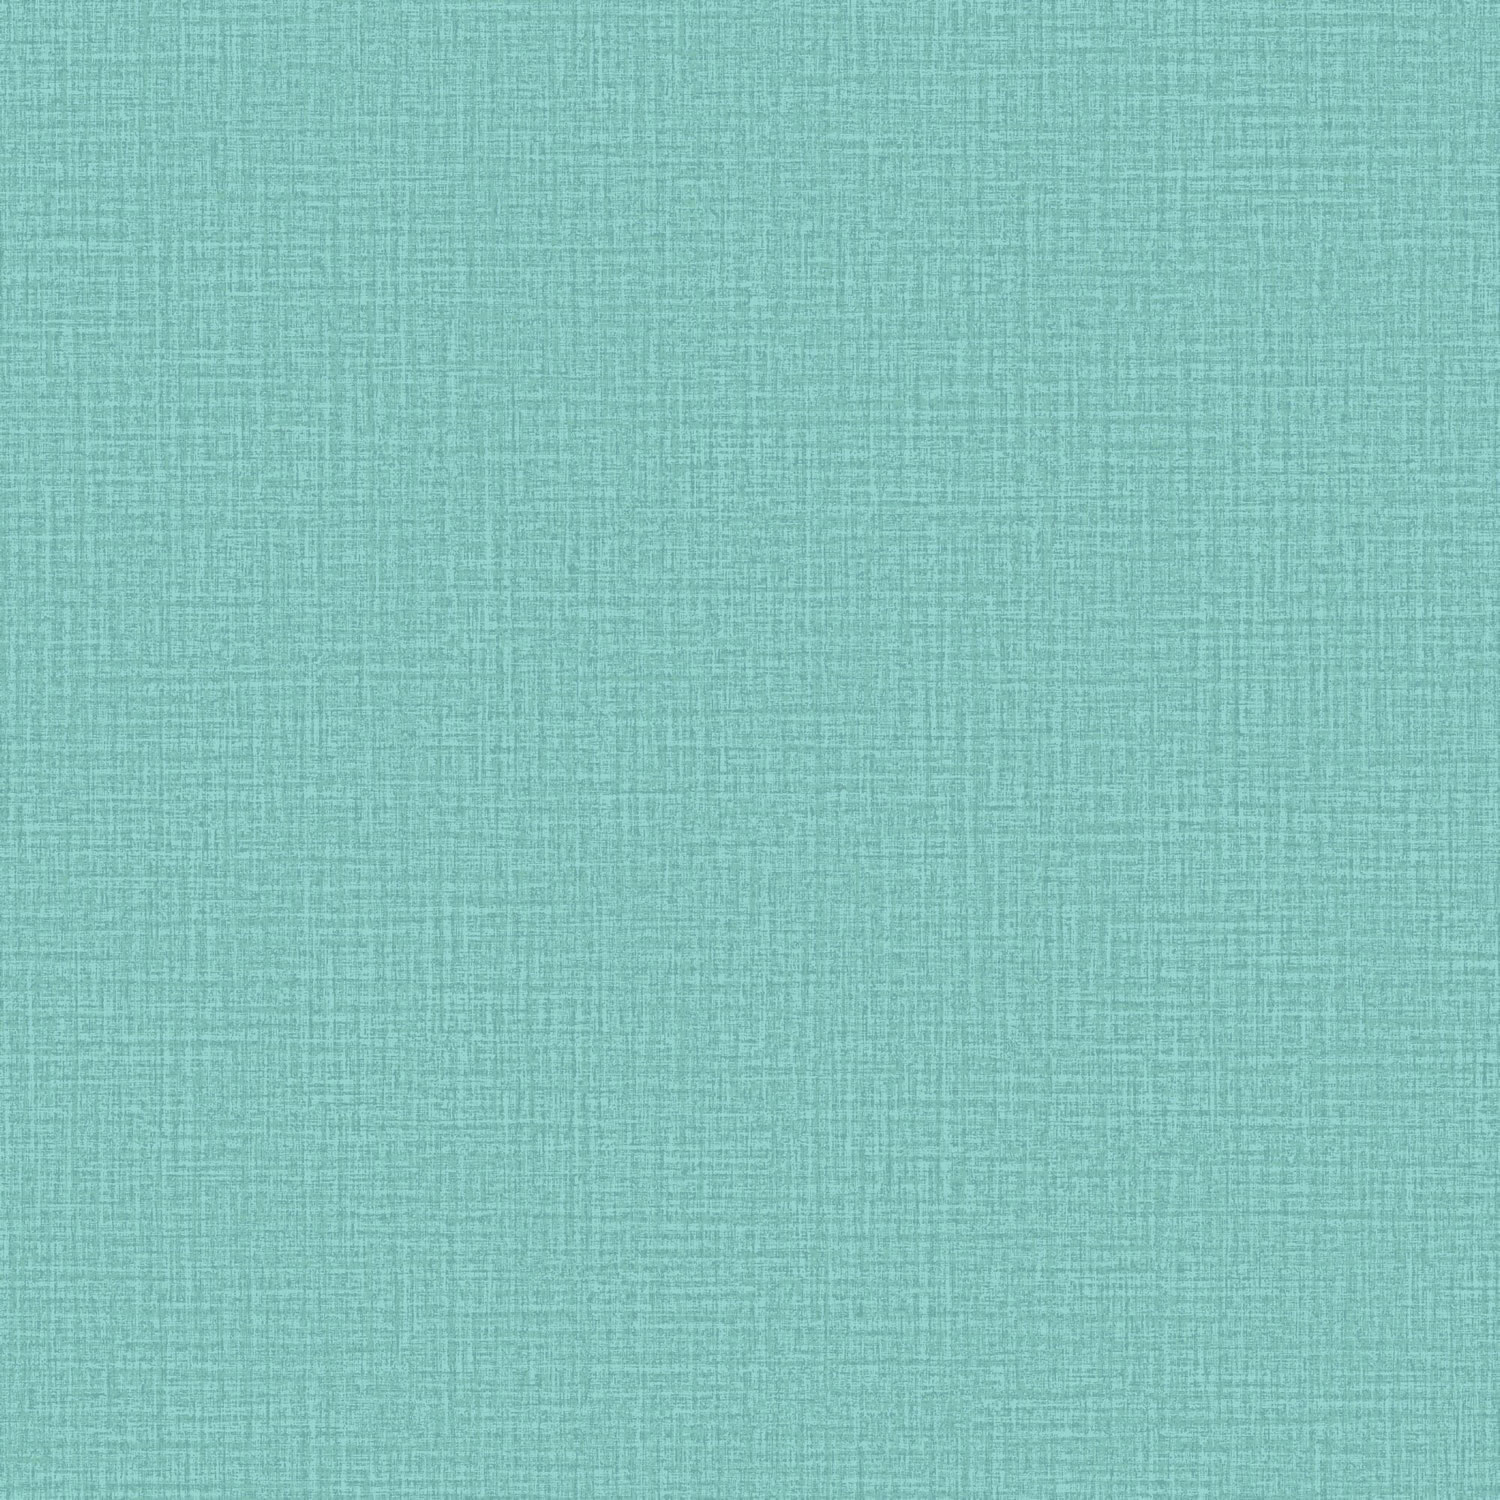 Grandeco Boho Chic Plain Teal Wallpaper 10m Roll Next Day Delivery 1500x1500